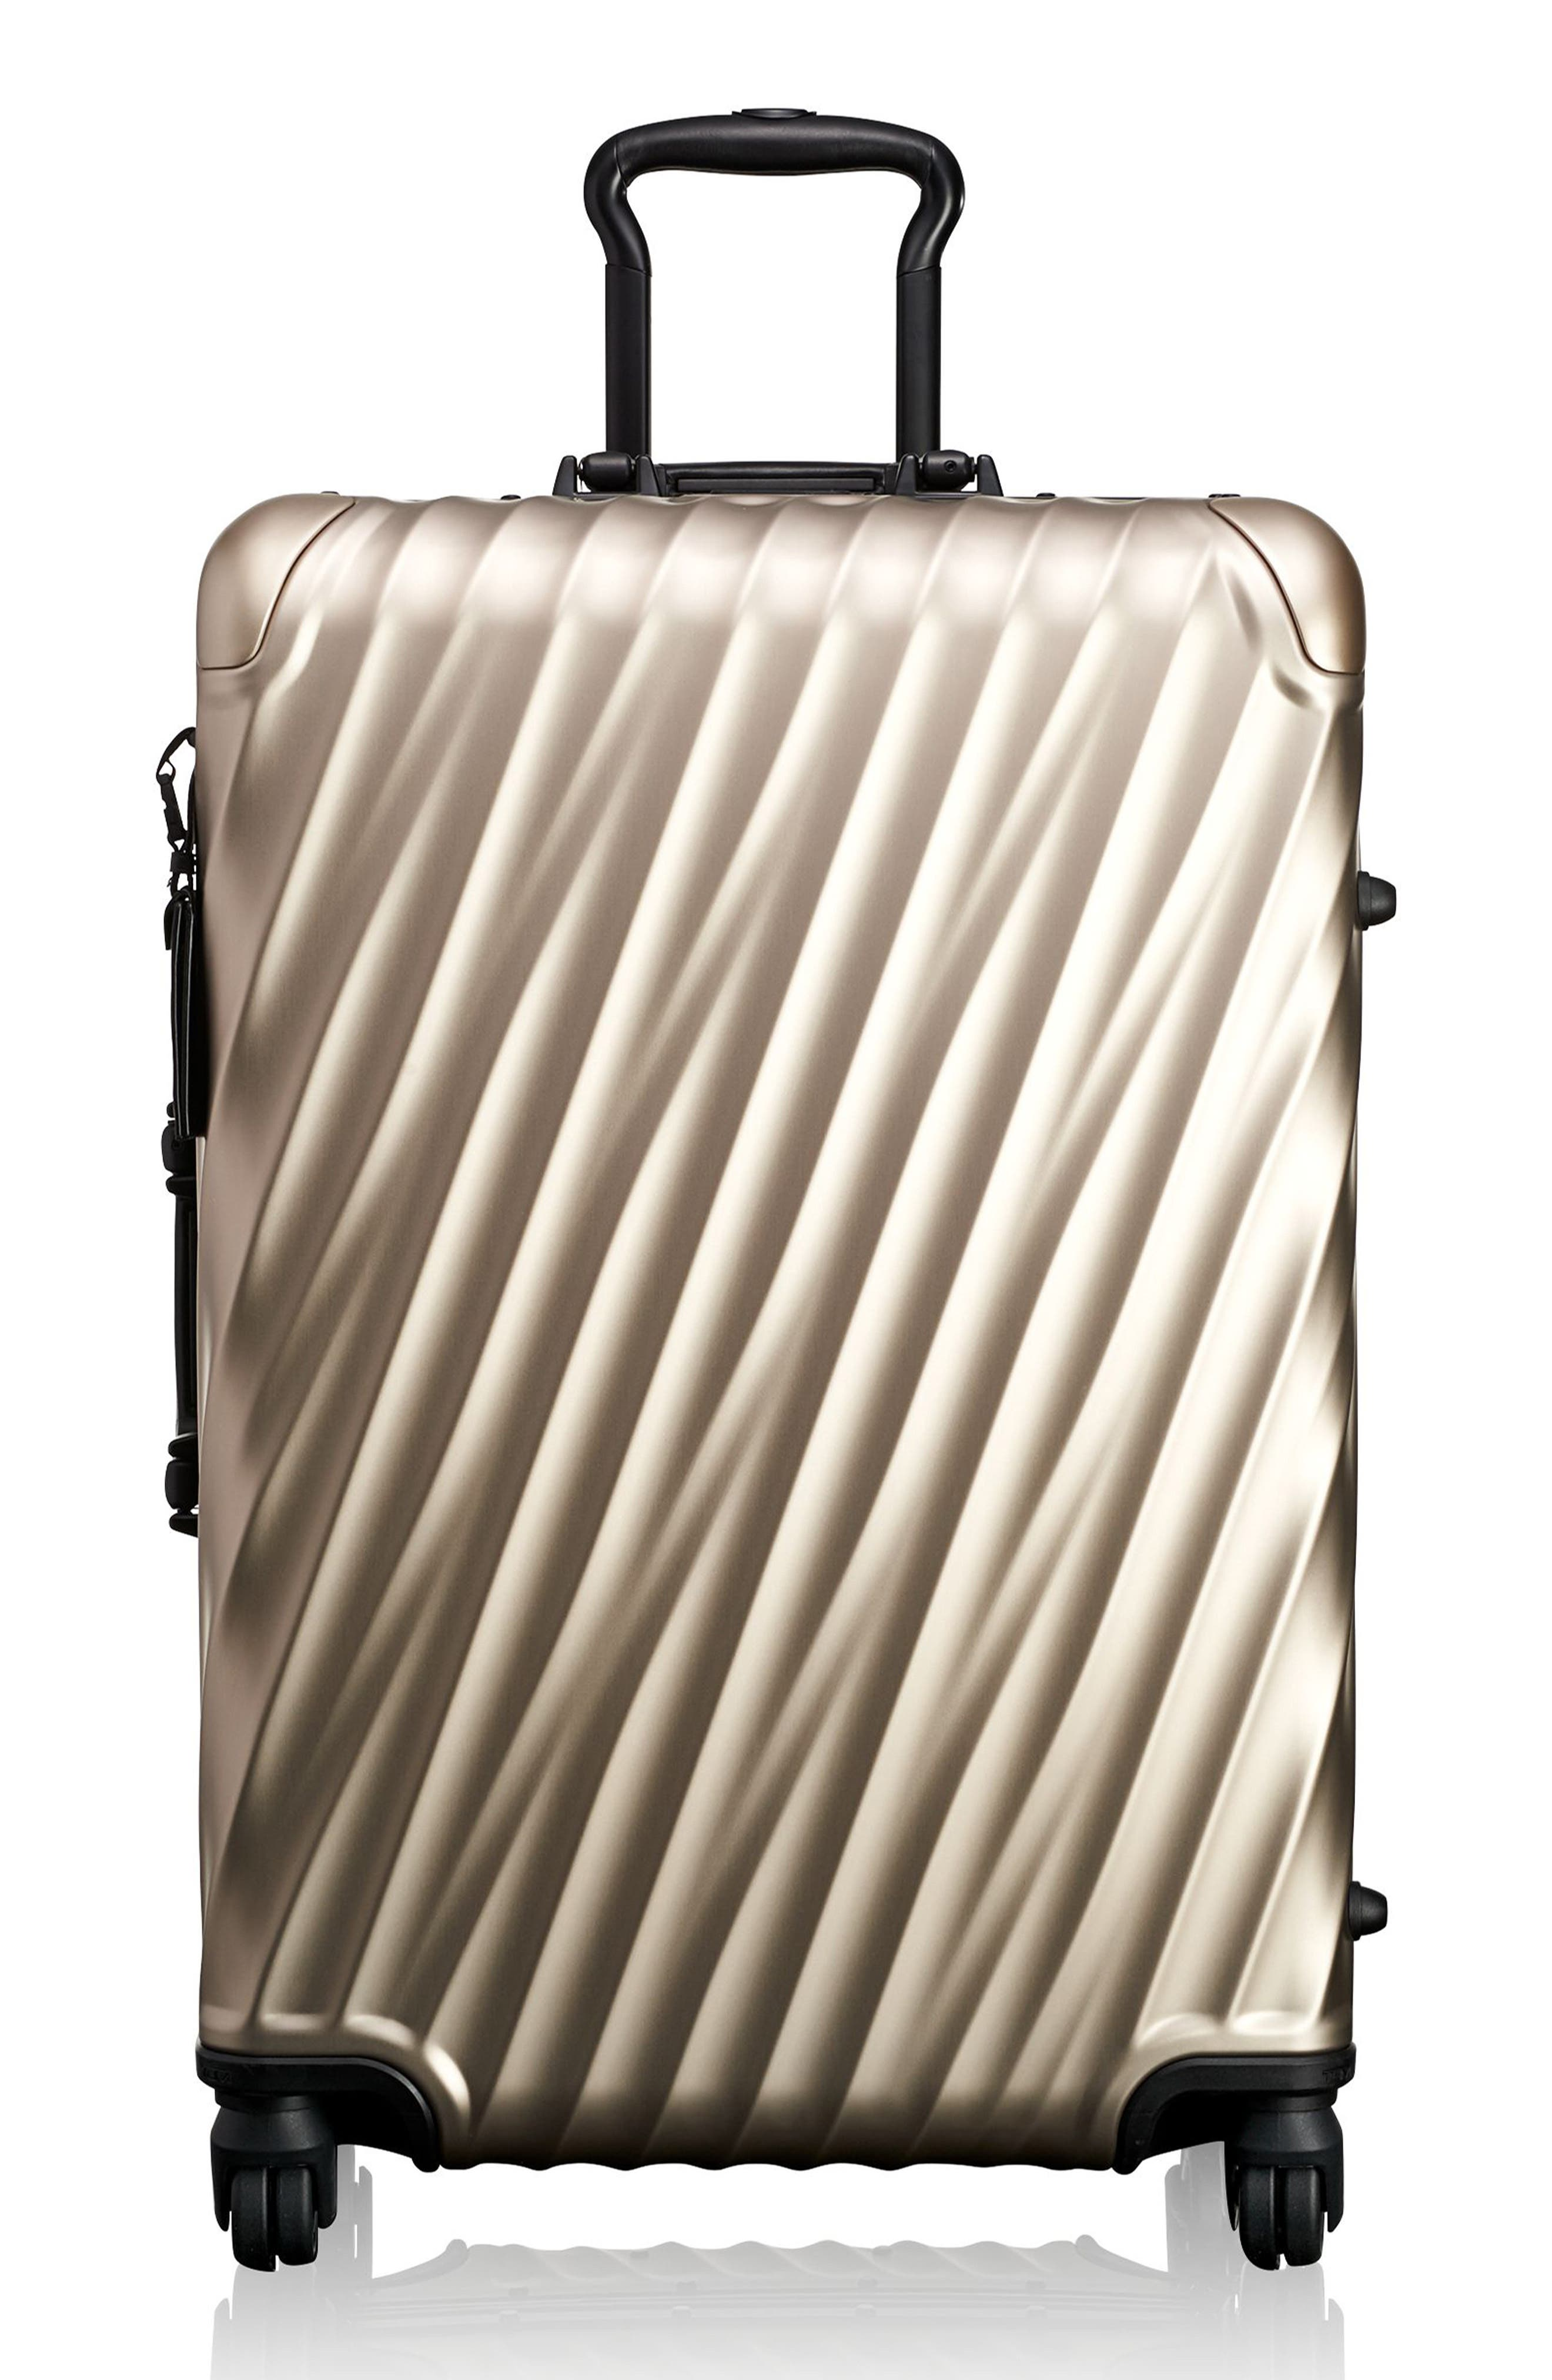 19-Degree 26-Inch Aluminum Spinner Packing Case,                             Main thumbnail 1, color,                             Ivory Gold